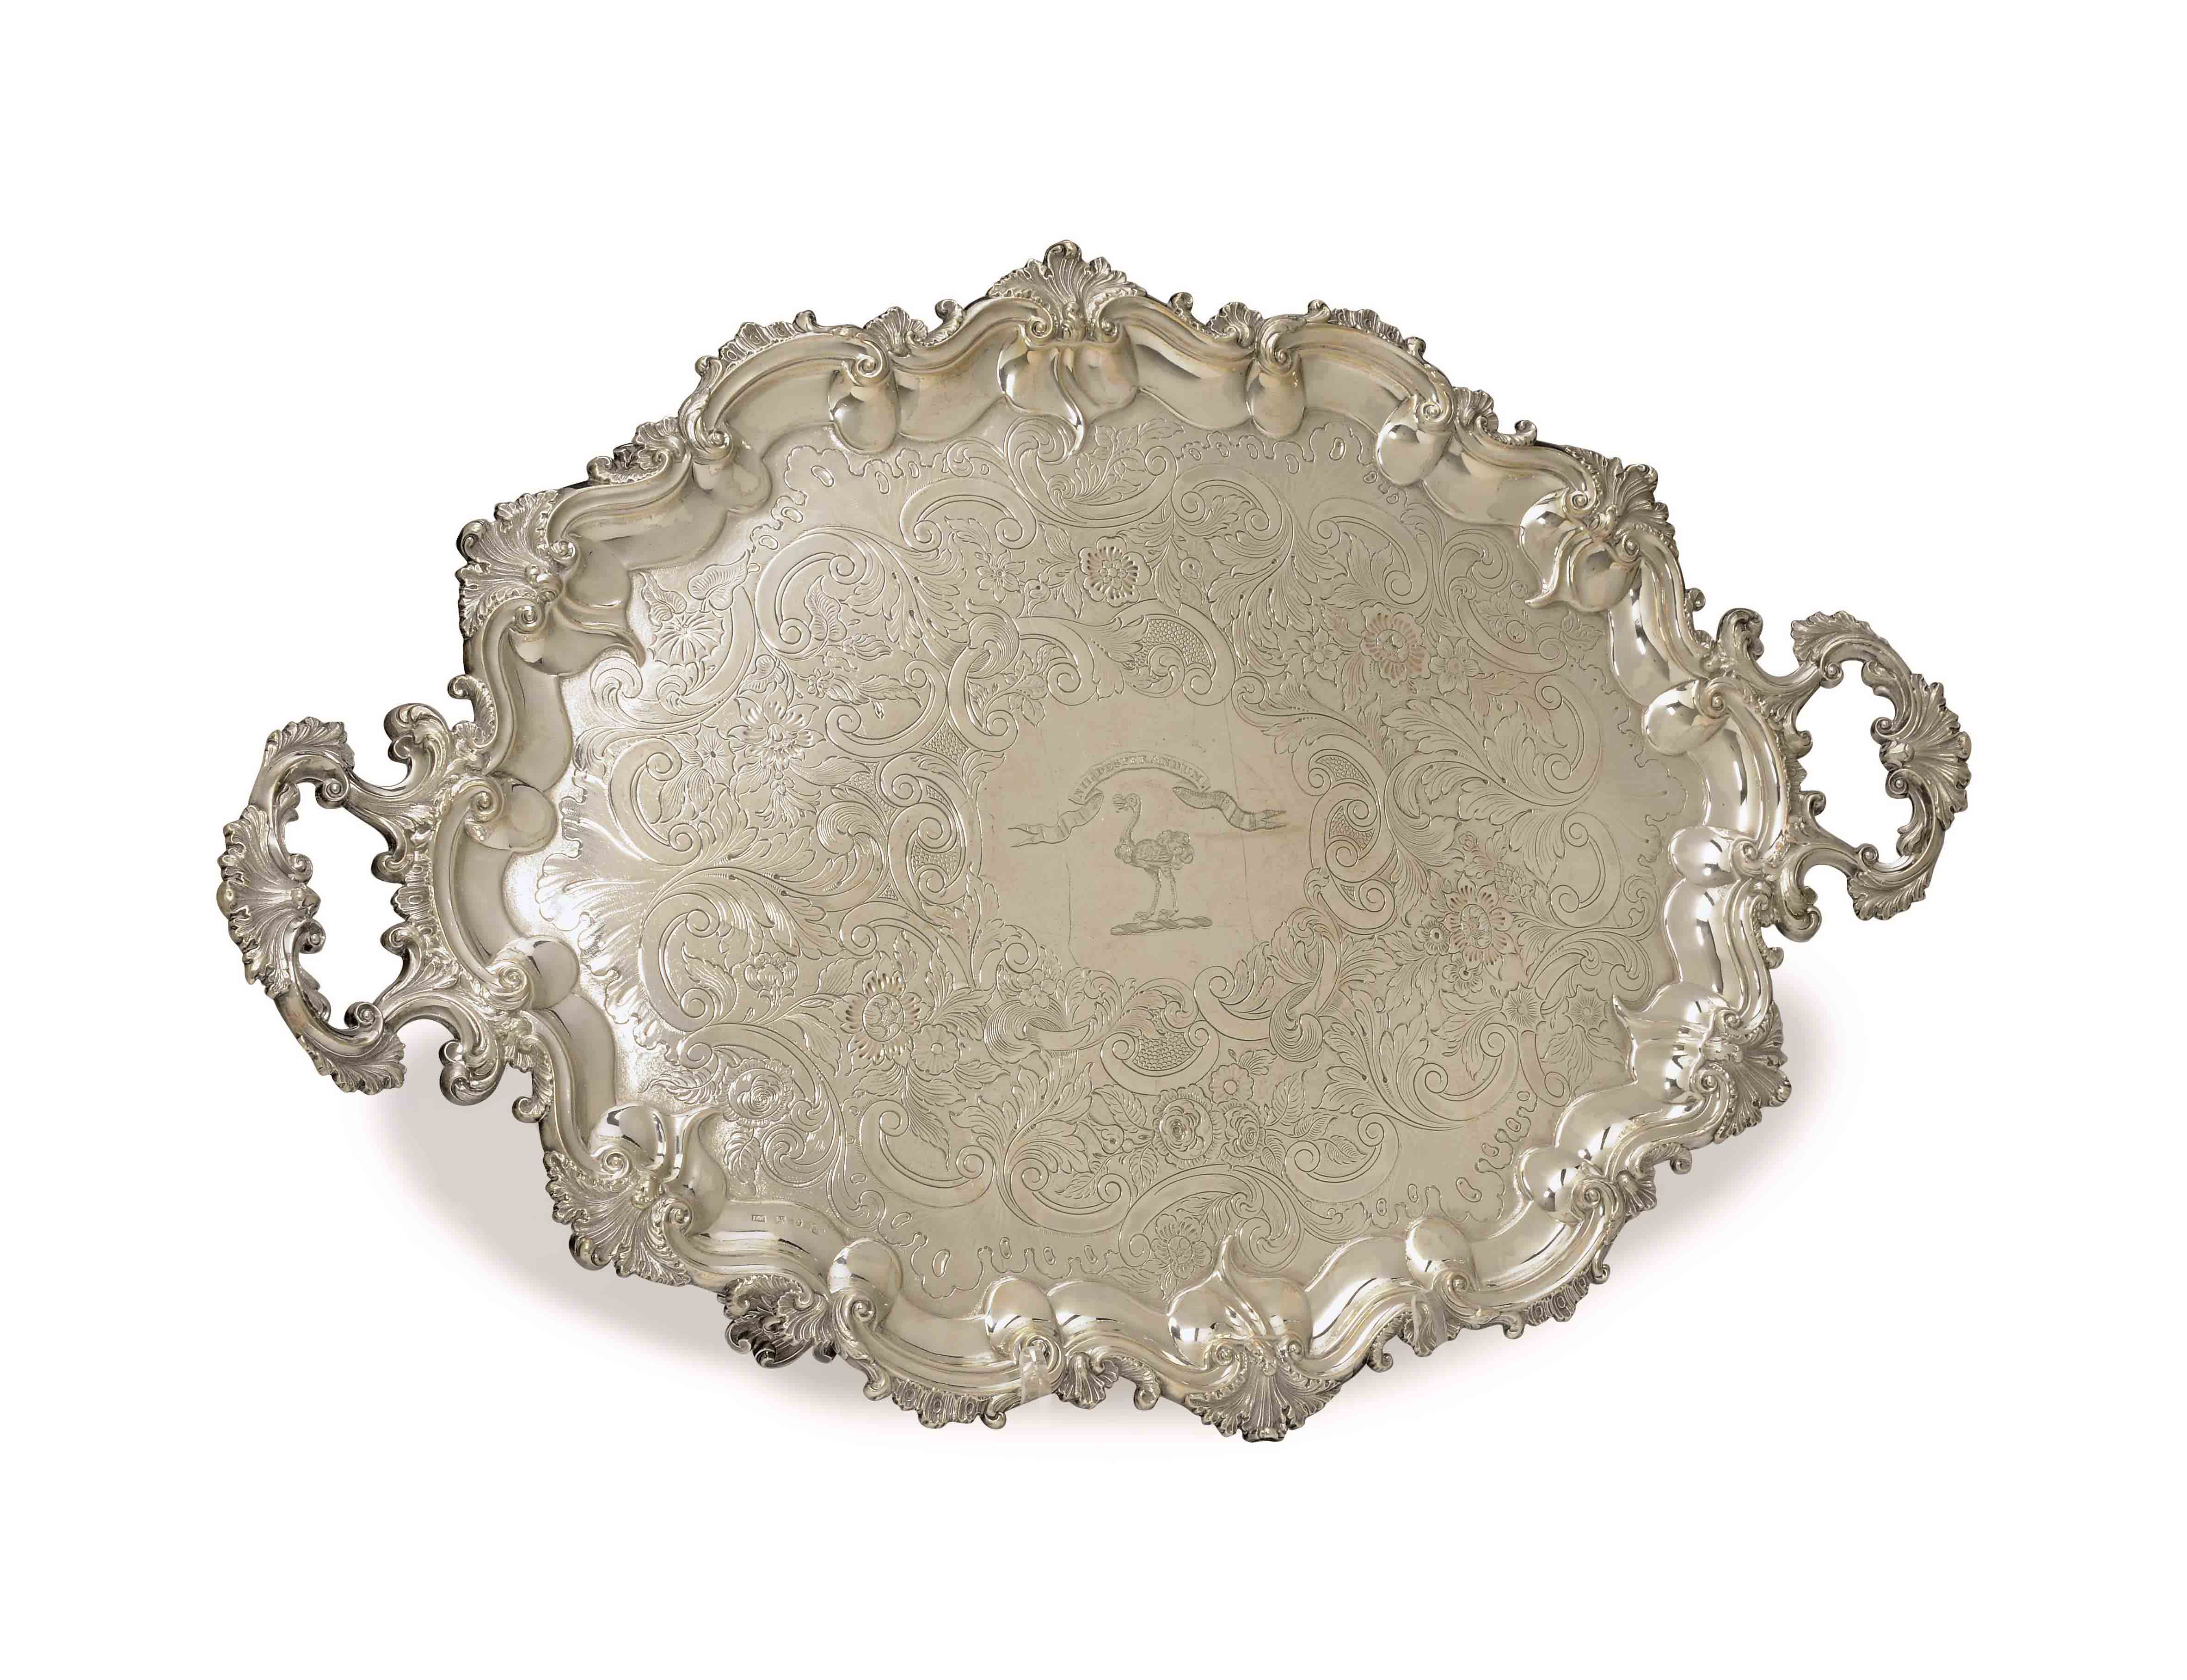 A WILLIAM IV SILVER TWO-HANDLED TEA TRAY,